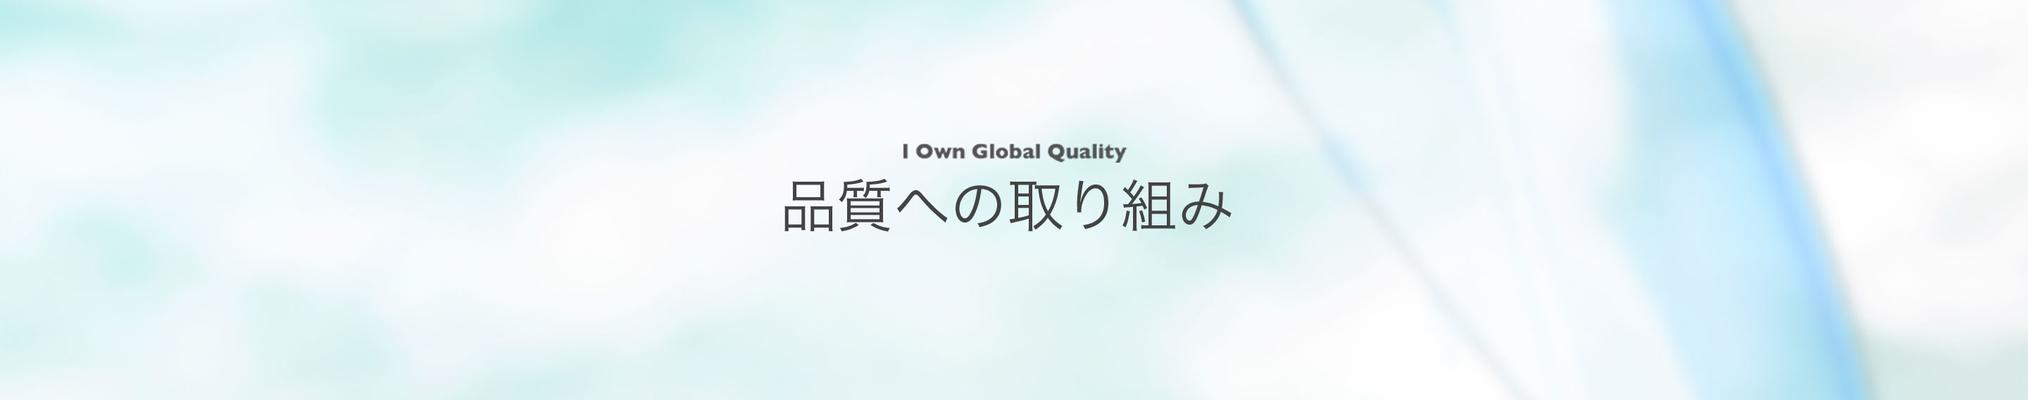 I Own Global Quality